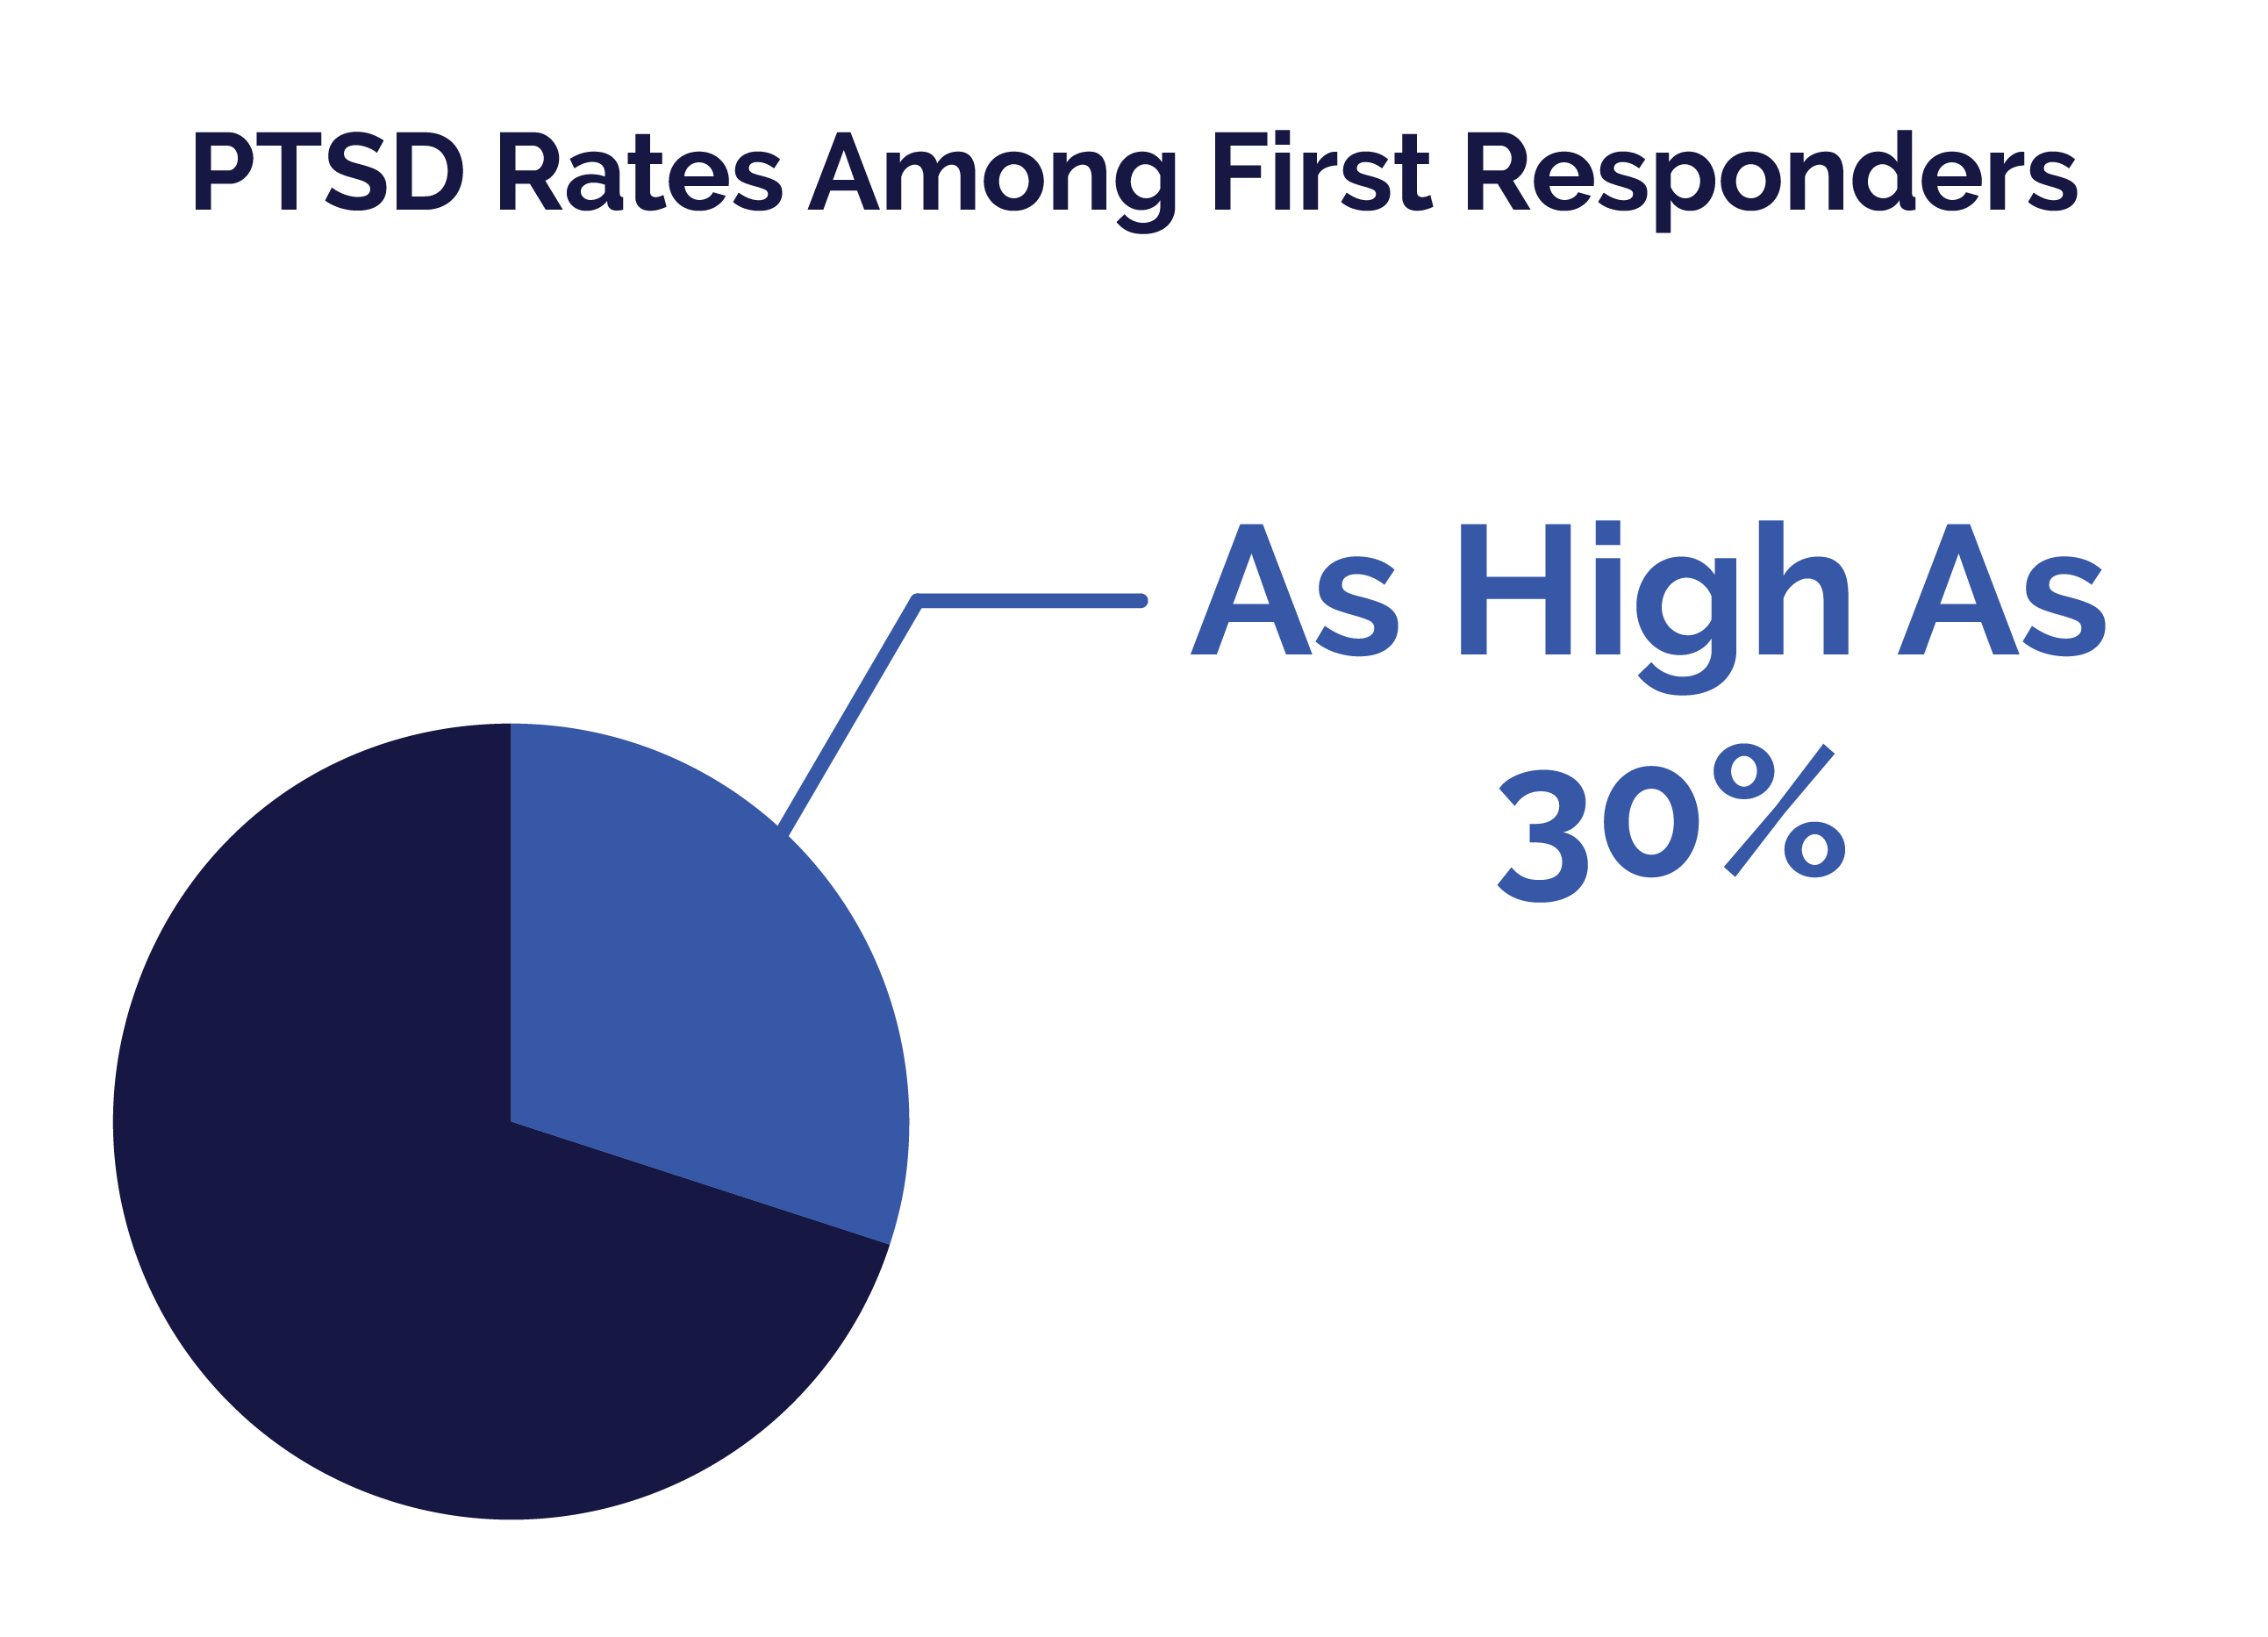 First Responders Guide - PTSD Rates